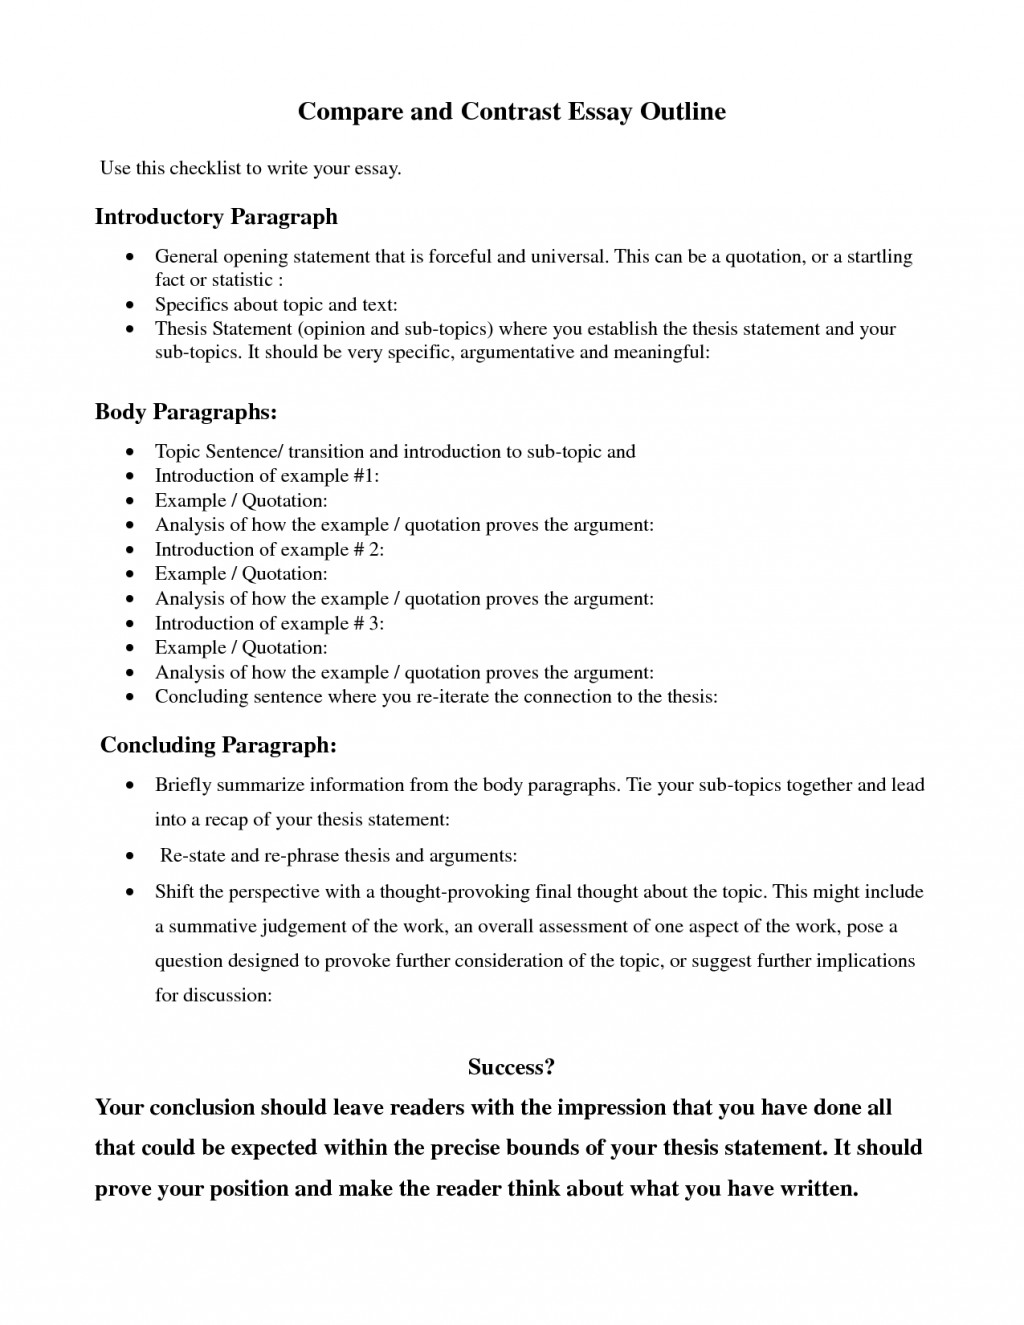 002 Compare And Contrast Cultures Essay Topics Stirring Large